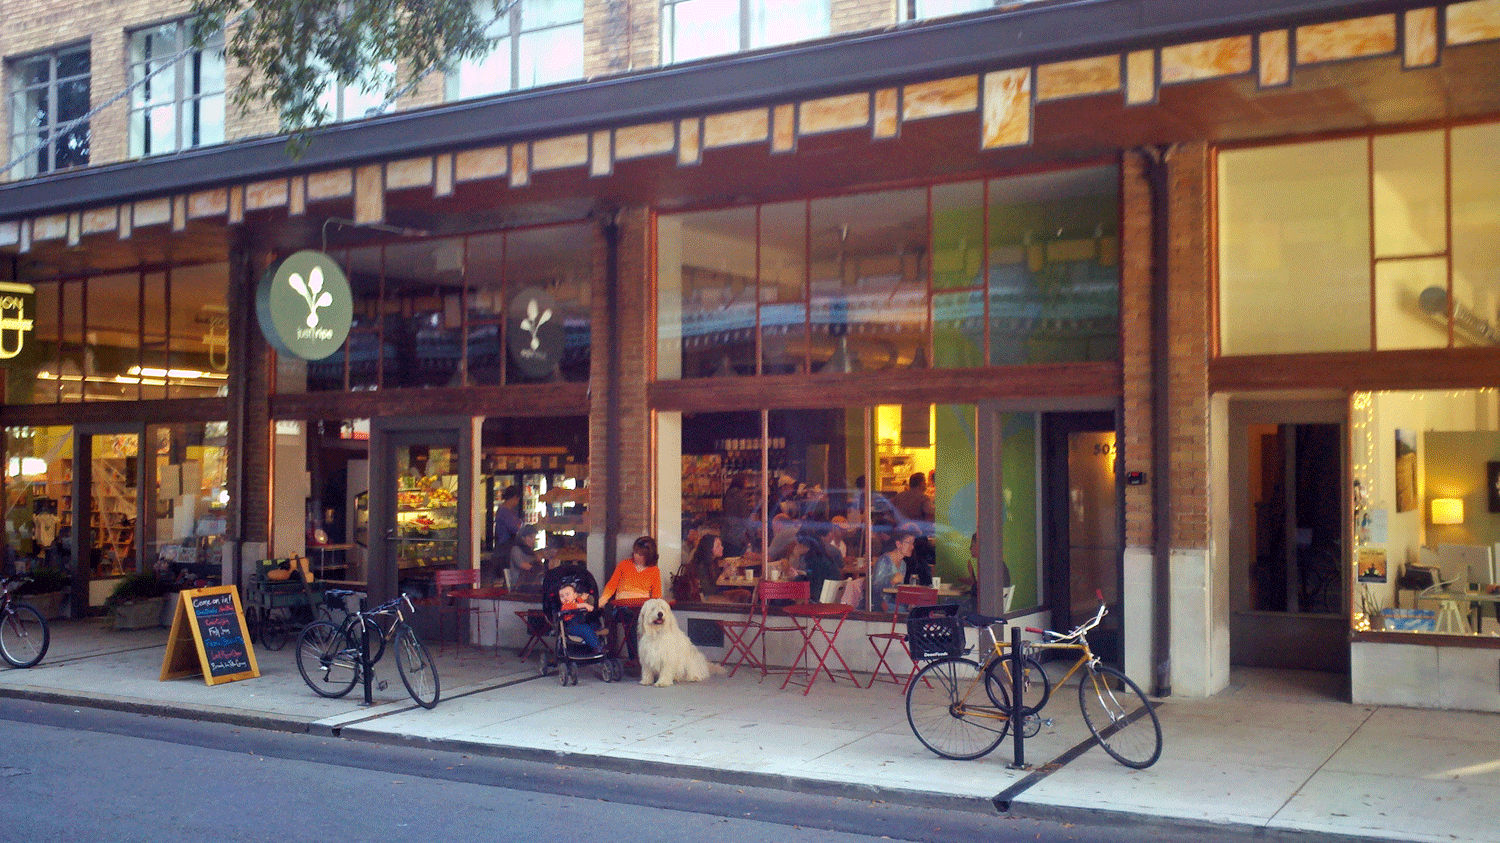 downtown storefront